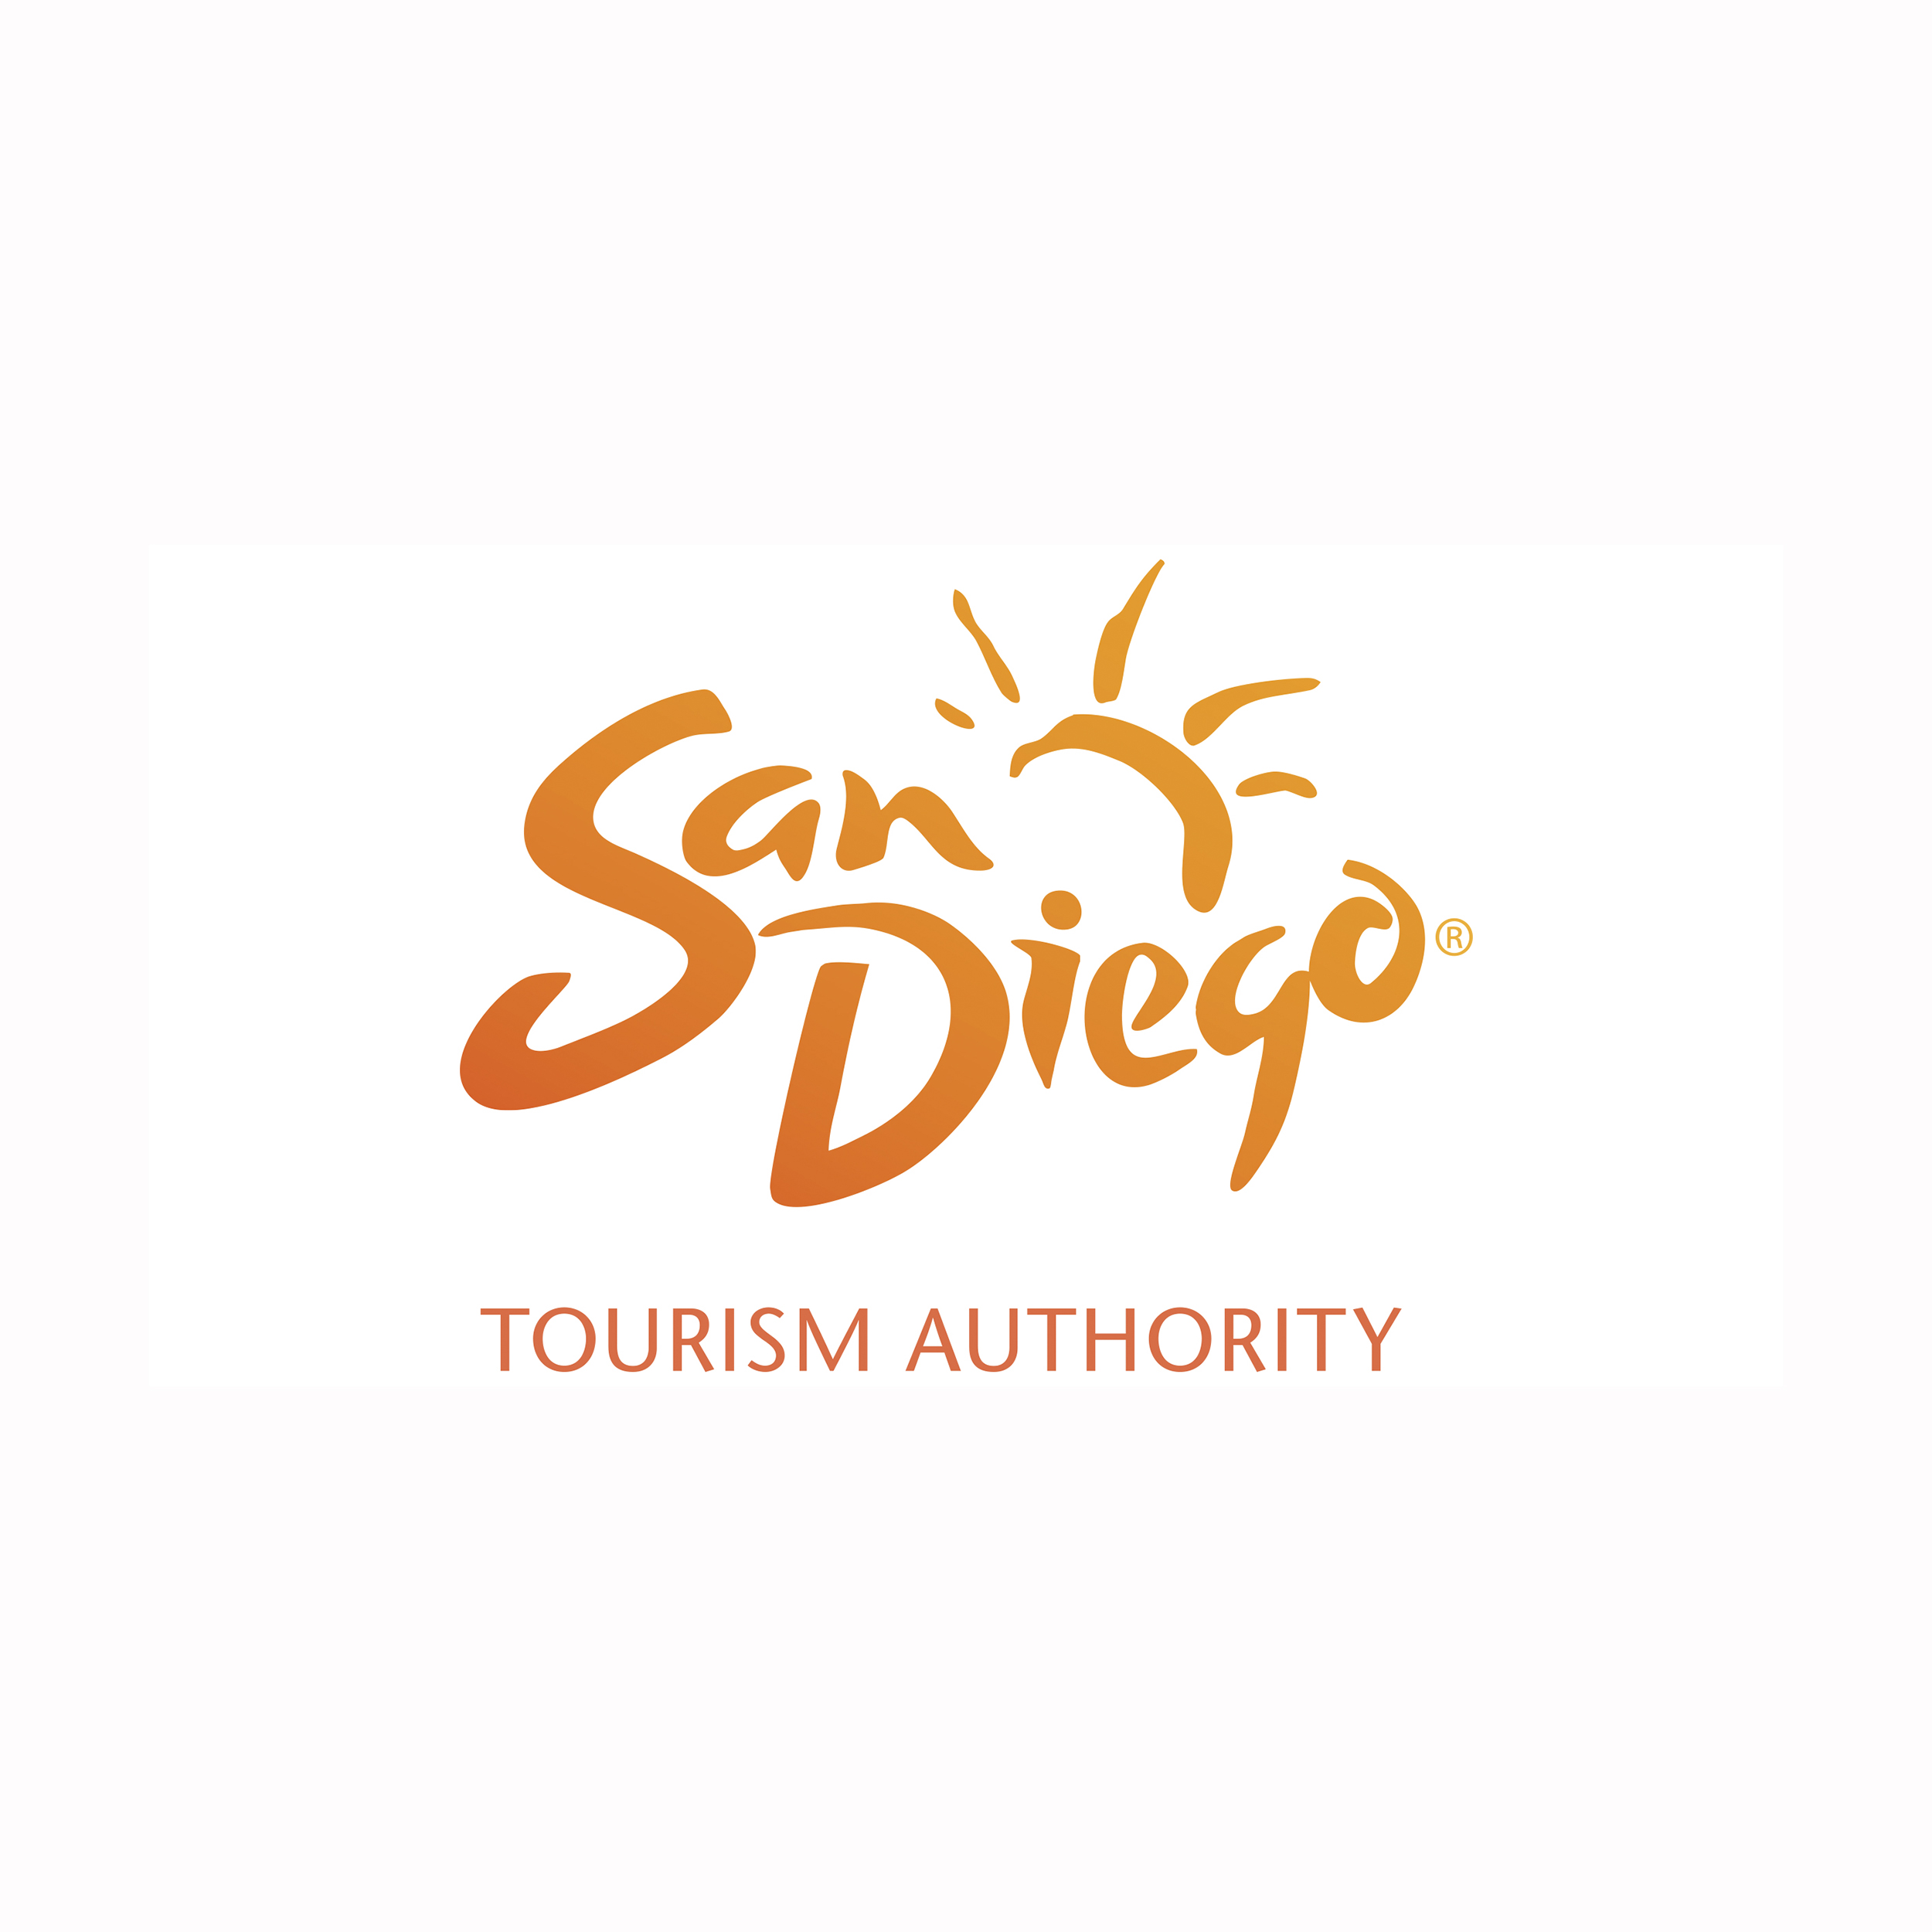 SAN DIEGO TOURISM AUTHORITY.jpg